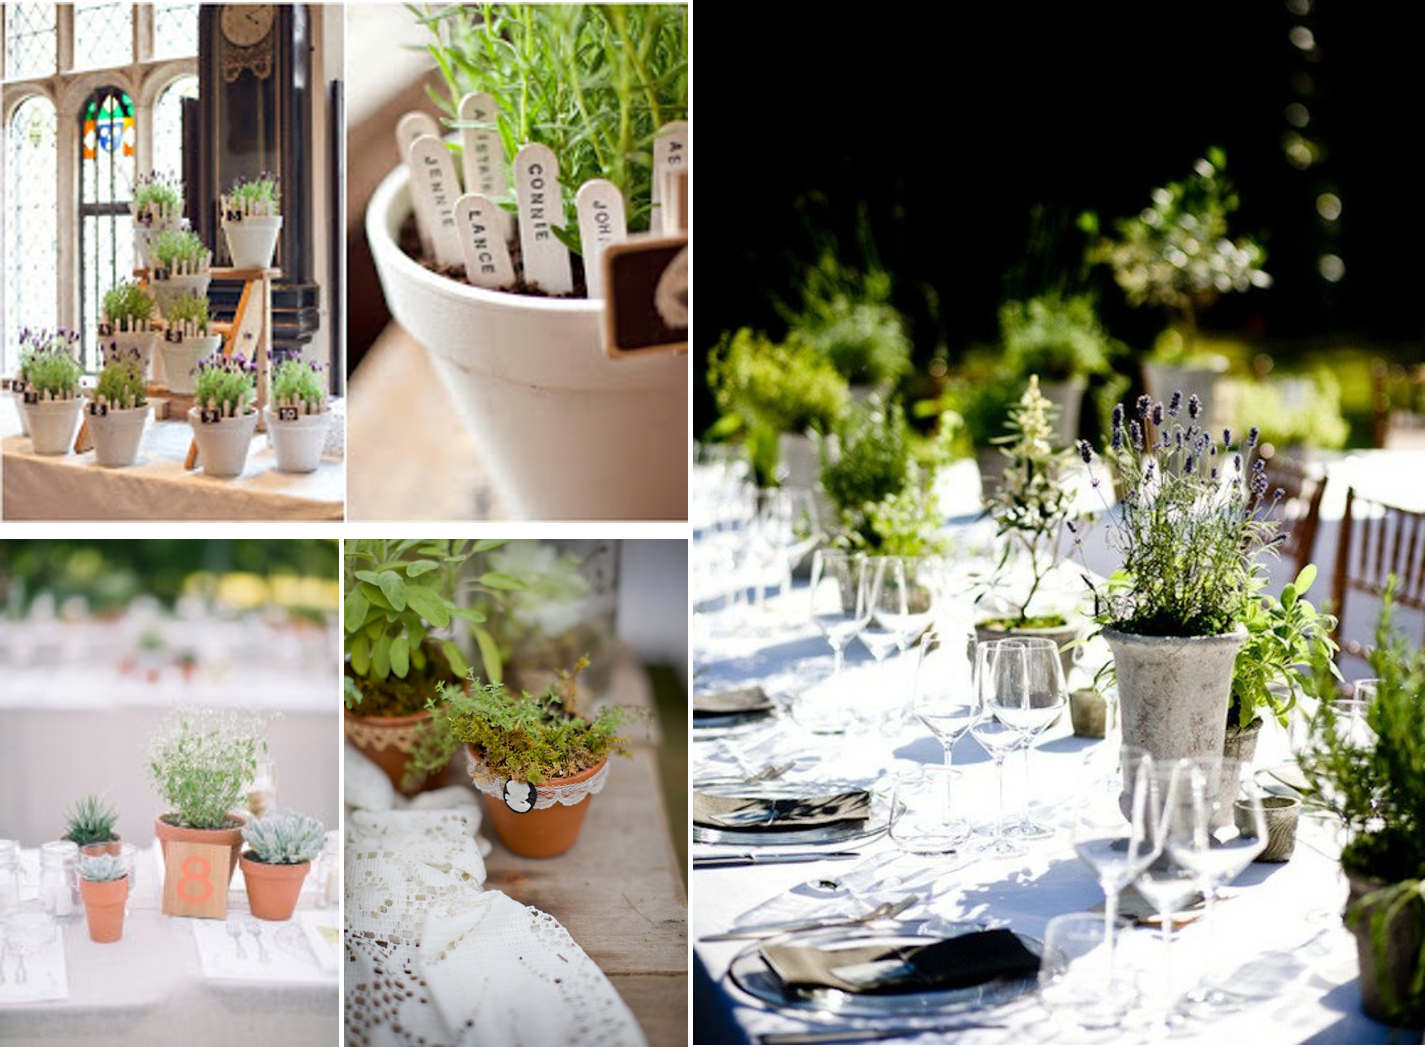 Momentips ideas para decorar tu boda con plantas arom ticas for Todo ideas originales para decorar